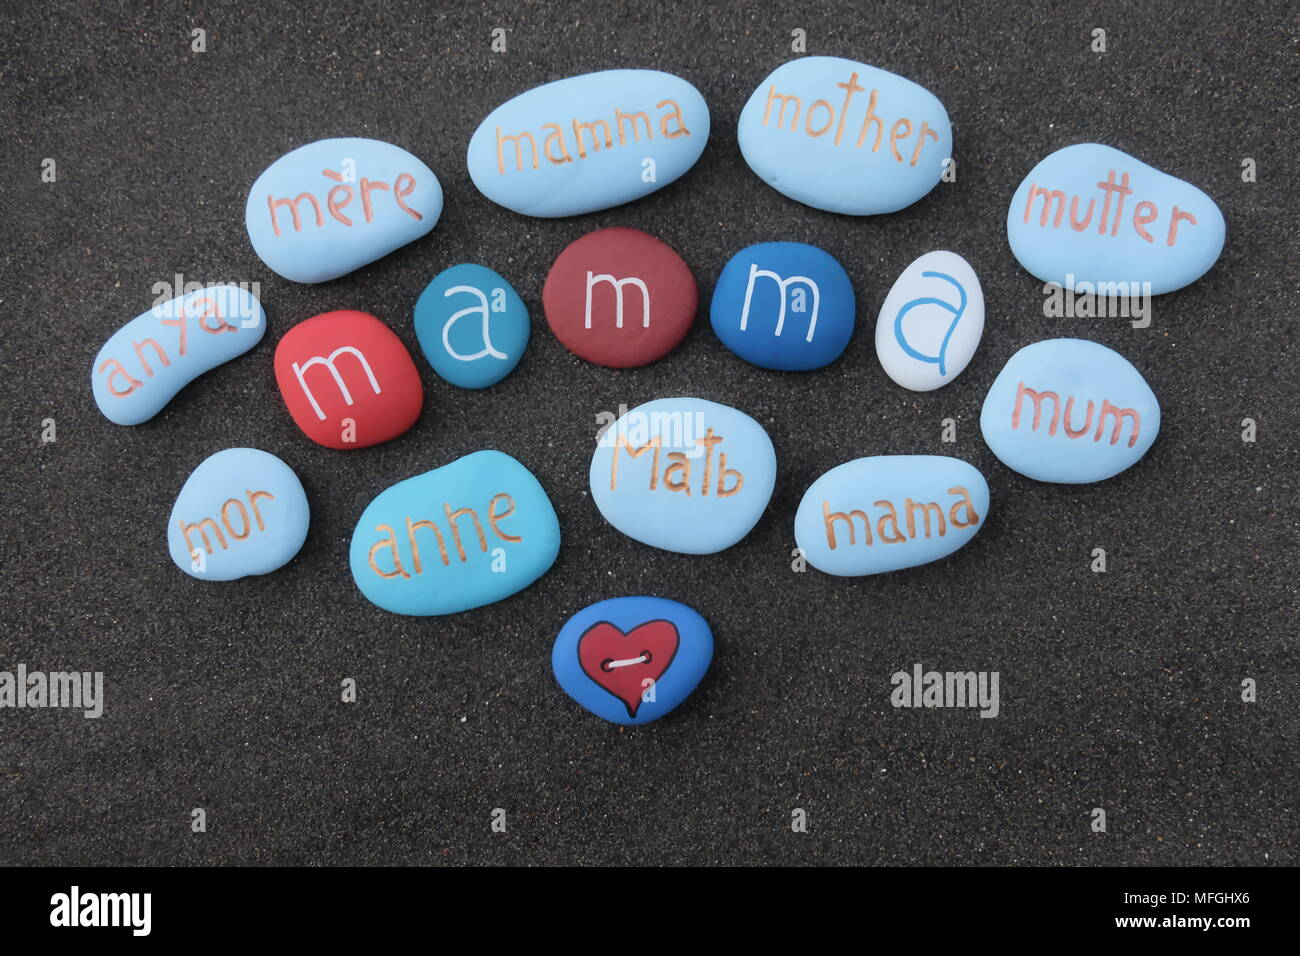 Mother text in many languages with carved and colored stones over black volcanic sand - Stock Image